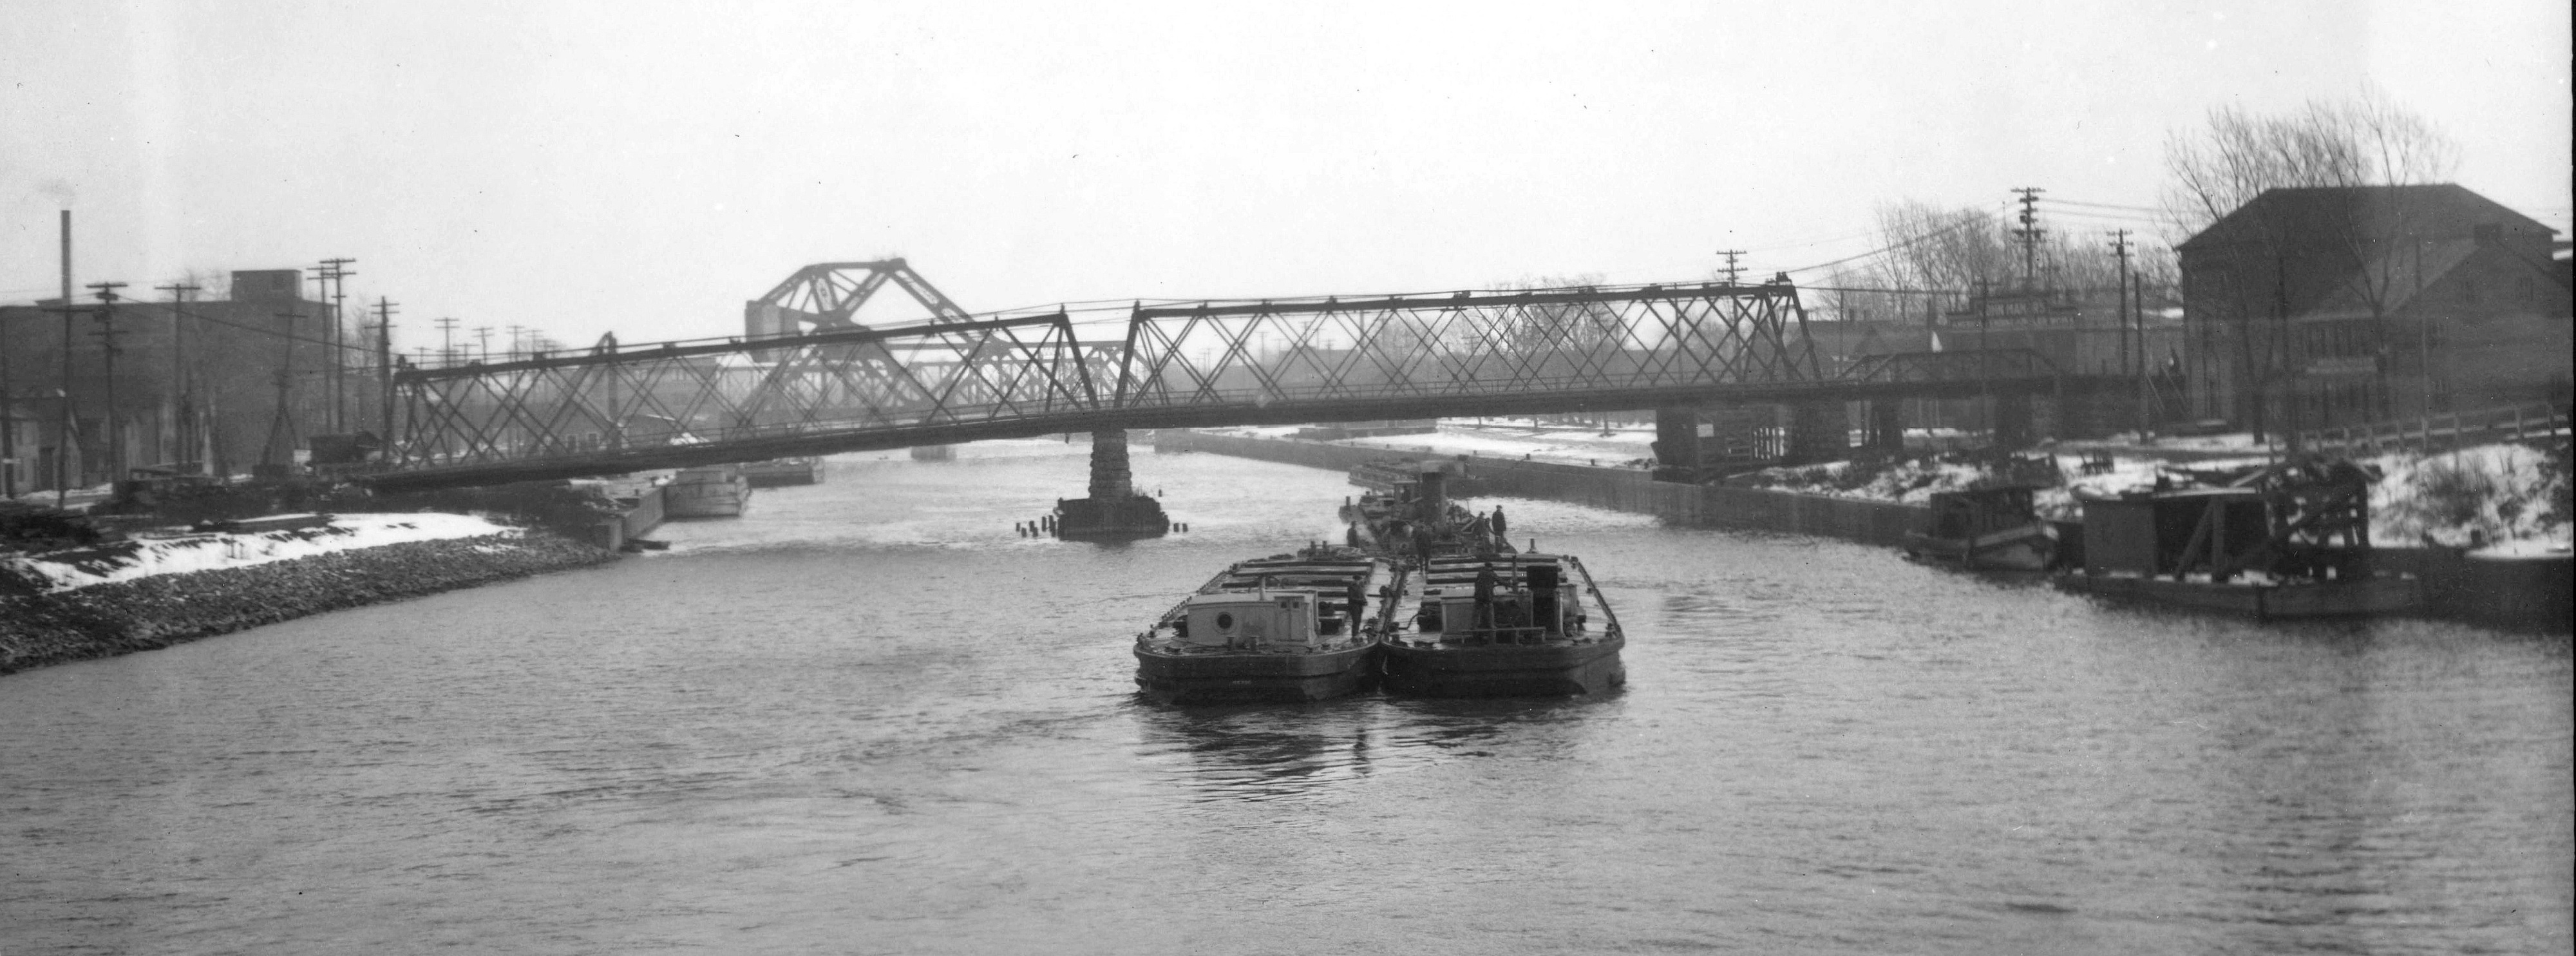 Main Street, jack-knife, and Vandervoort bridges across NY Barge Canal, photo (Erie Canal Museum, 1920-11-21).jpg